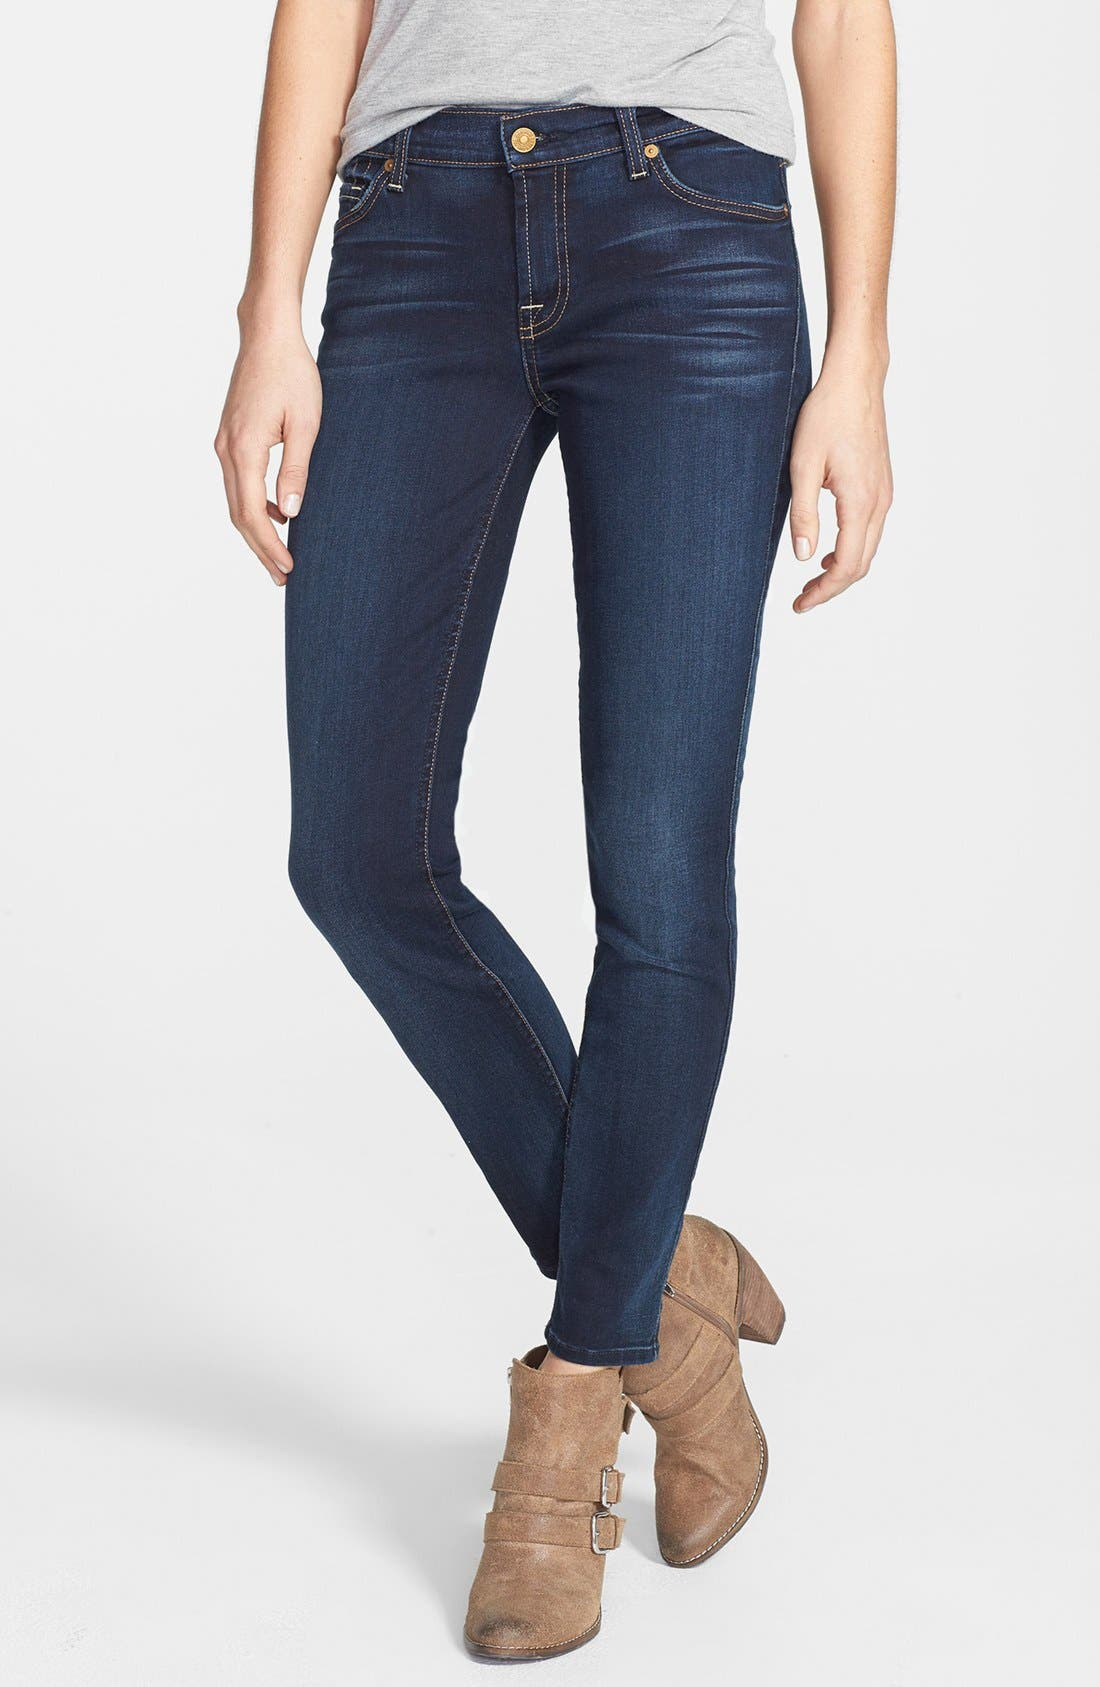 Alternate Image 1 Selected - 7 For All Mankind® Skinny Ankle Jeans (Merci Blue)